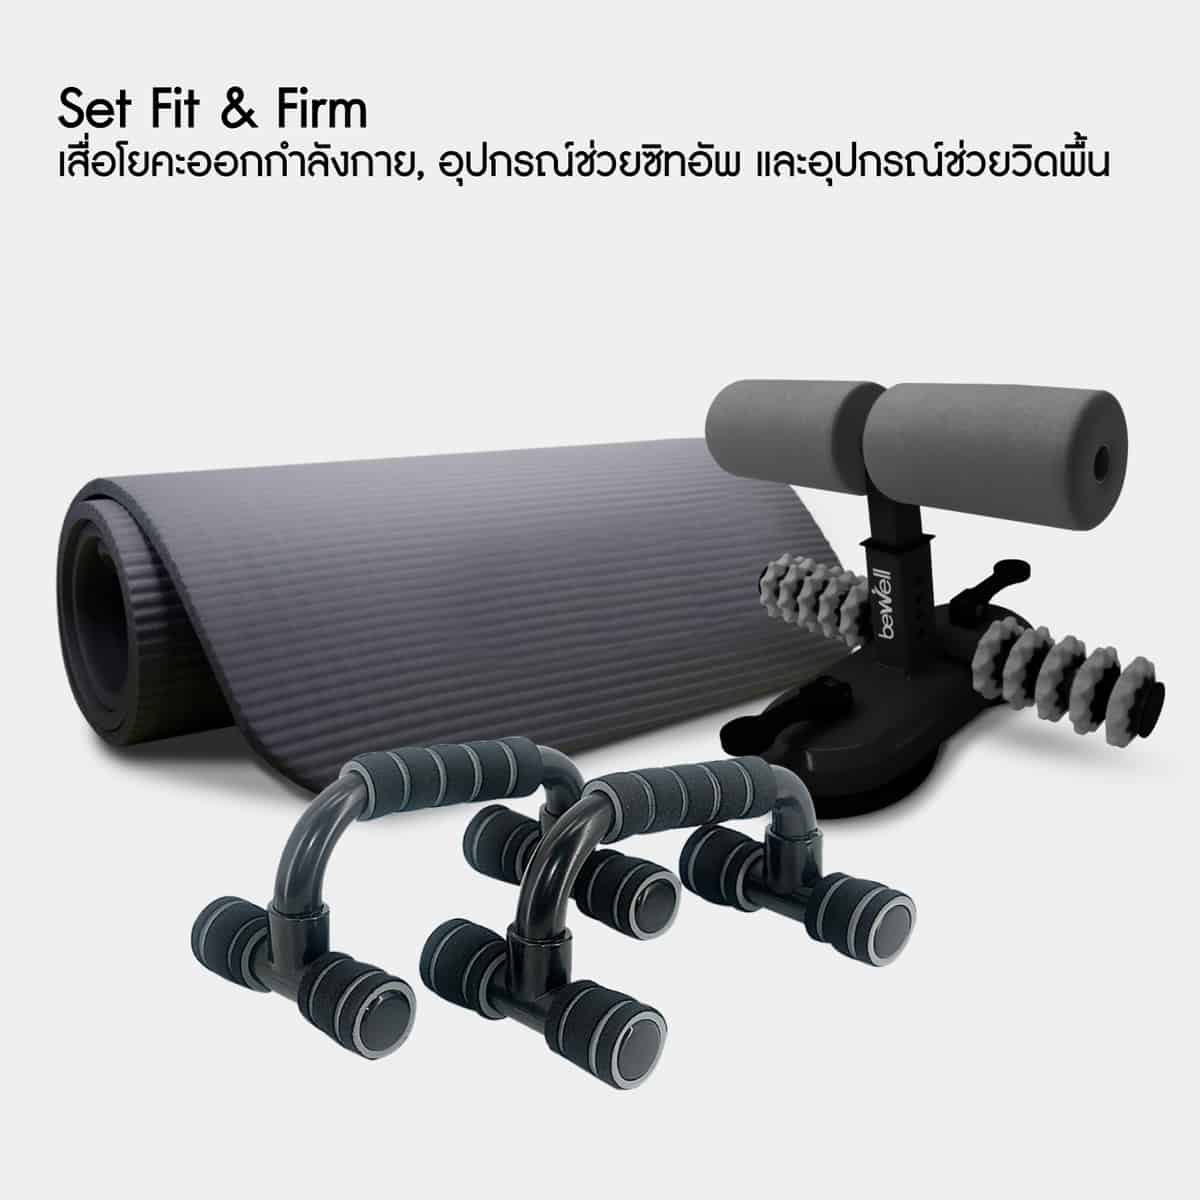 Set Fit & Firm Bewell 2